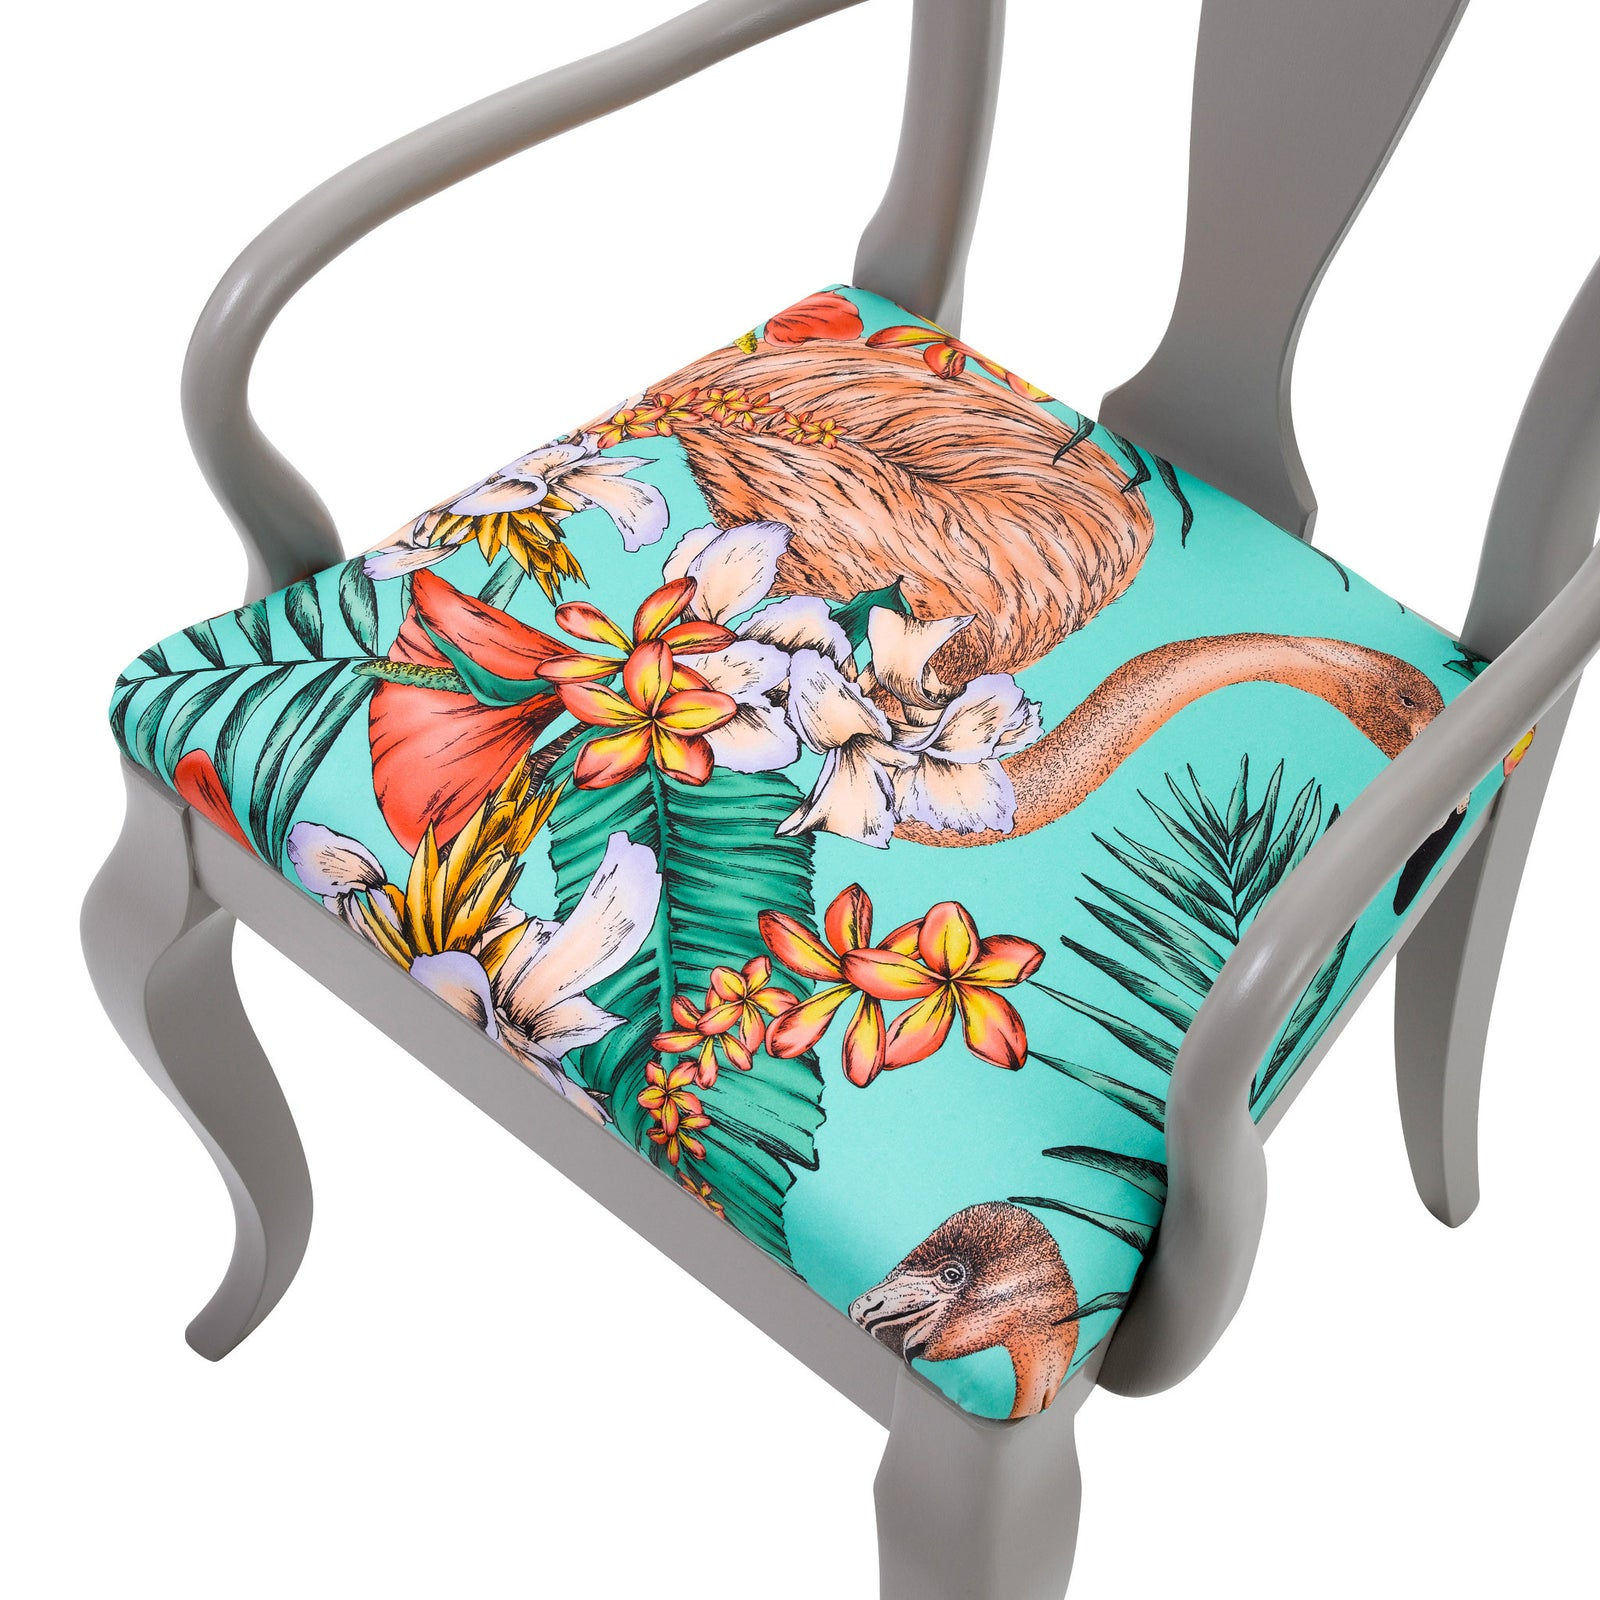 Seat view of the Fifi dining chair upholstered in Flamingo print finished in Grey paint.